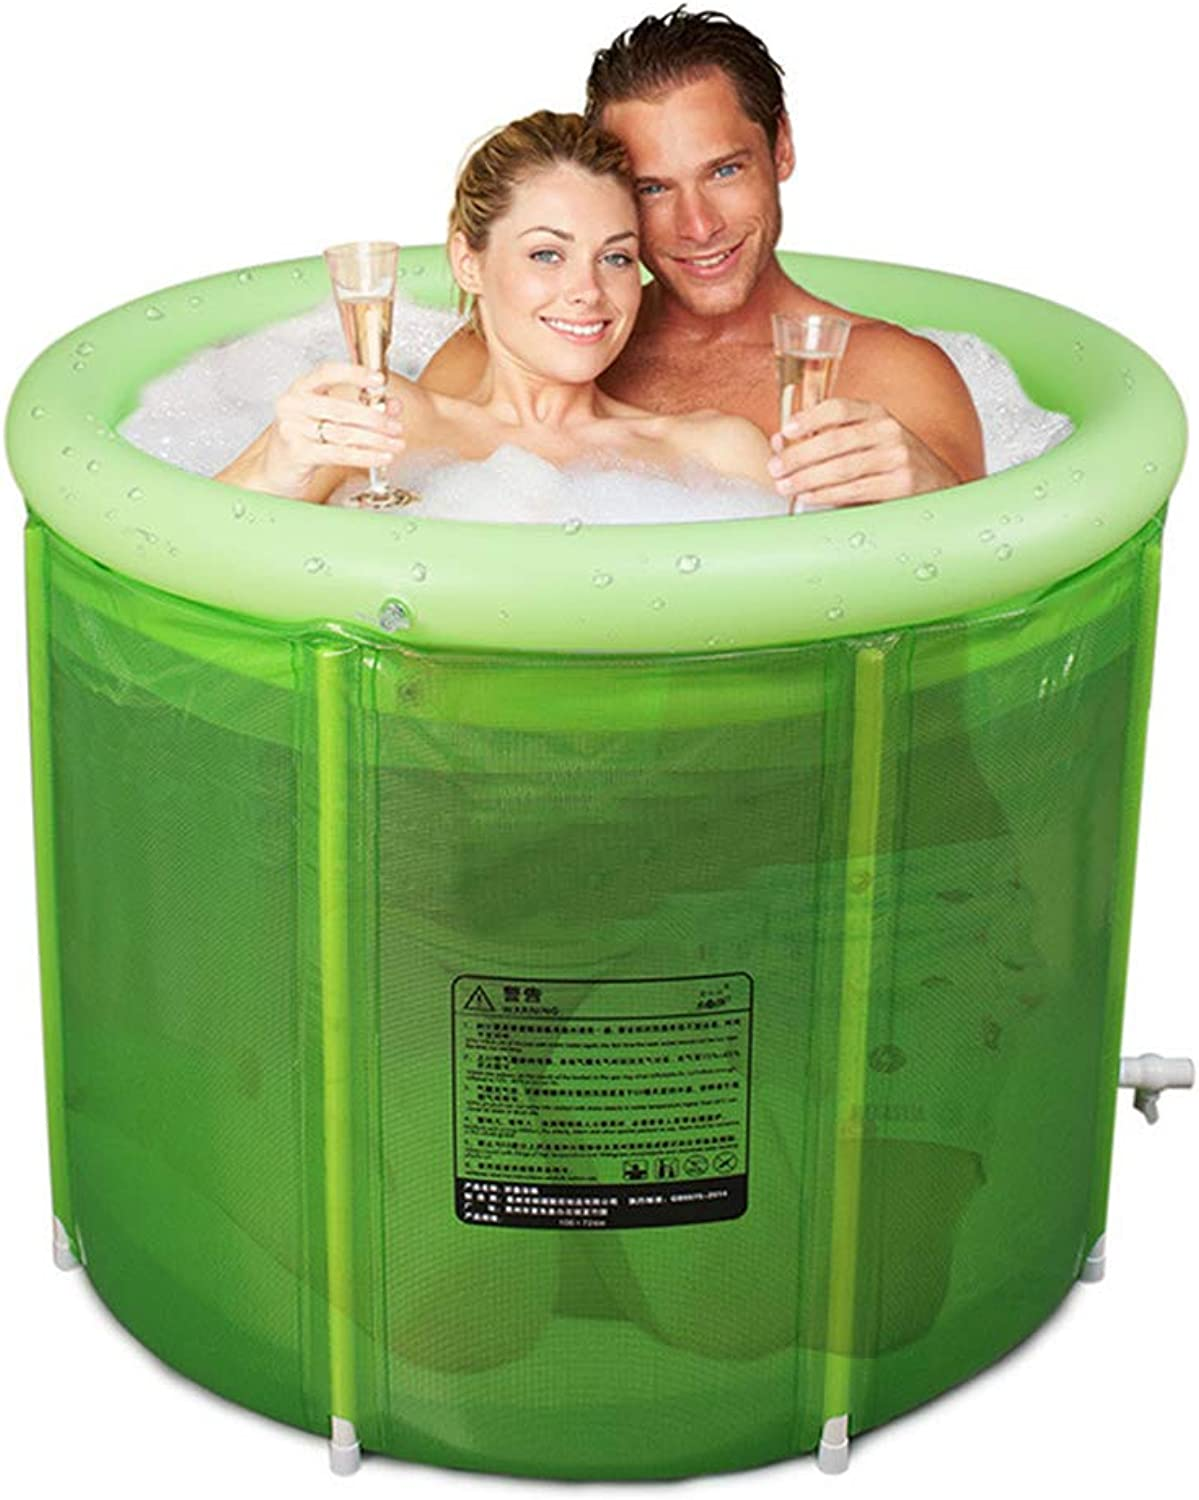 ZQ Double Adult Folding SPA Bathtub, Inflatable Plastic Bathtub, Household bathtub, Quality Deep Soaking Tub Bucket with Drain, Kids Anti-slippery Swimming Pool-green